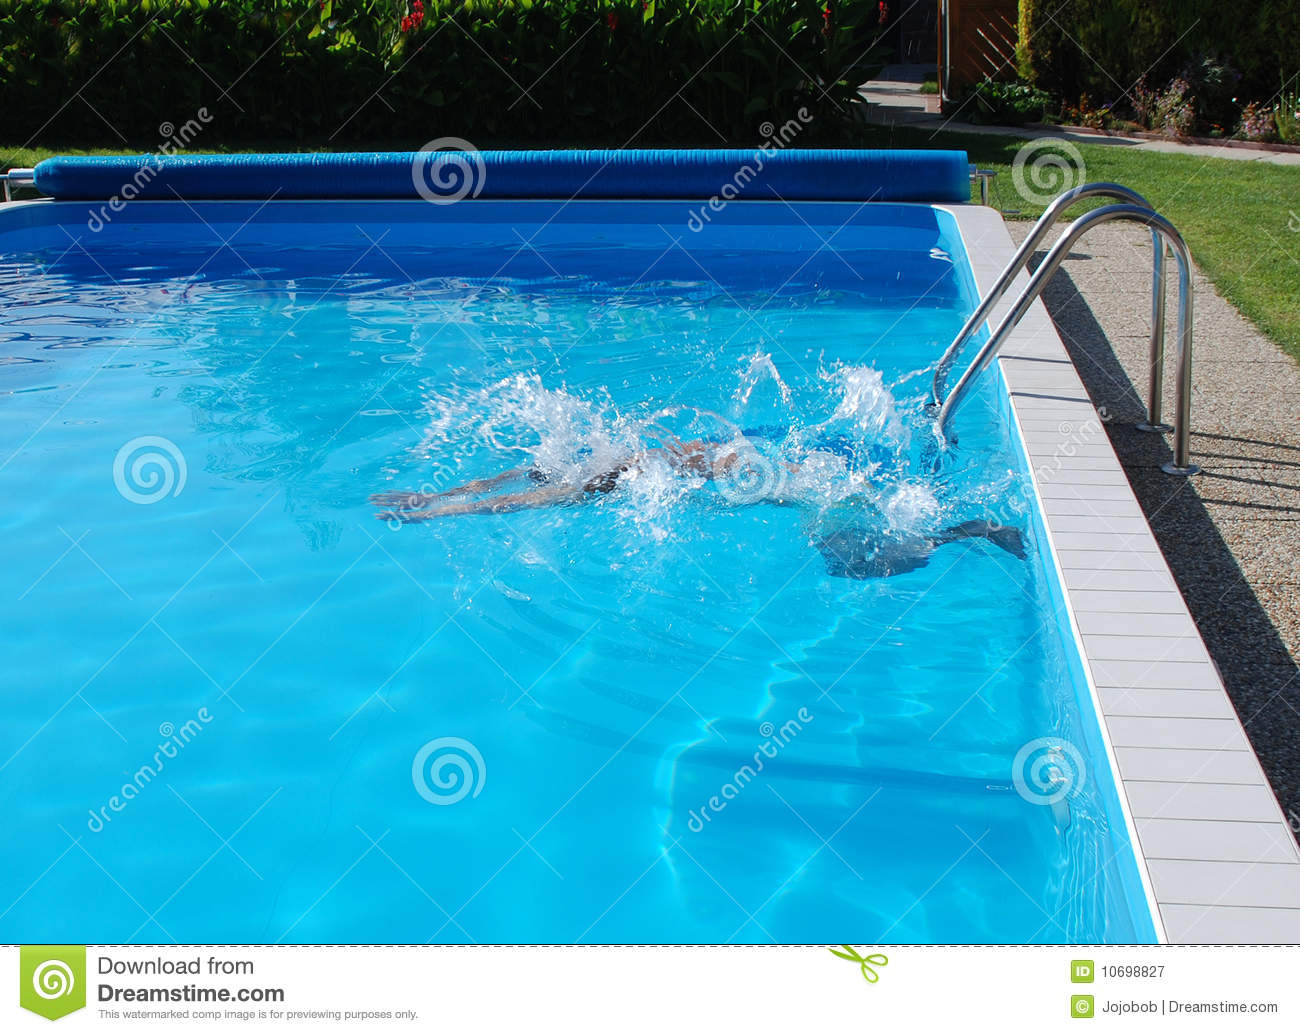 Man In Pool Royalty Free Stock Photography Image 10698827